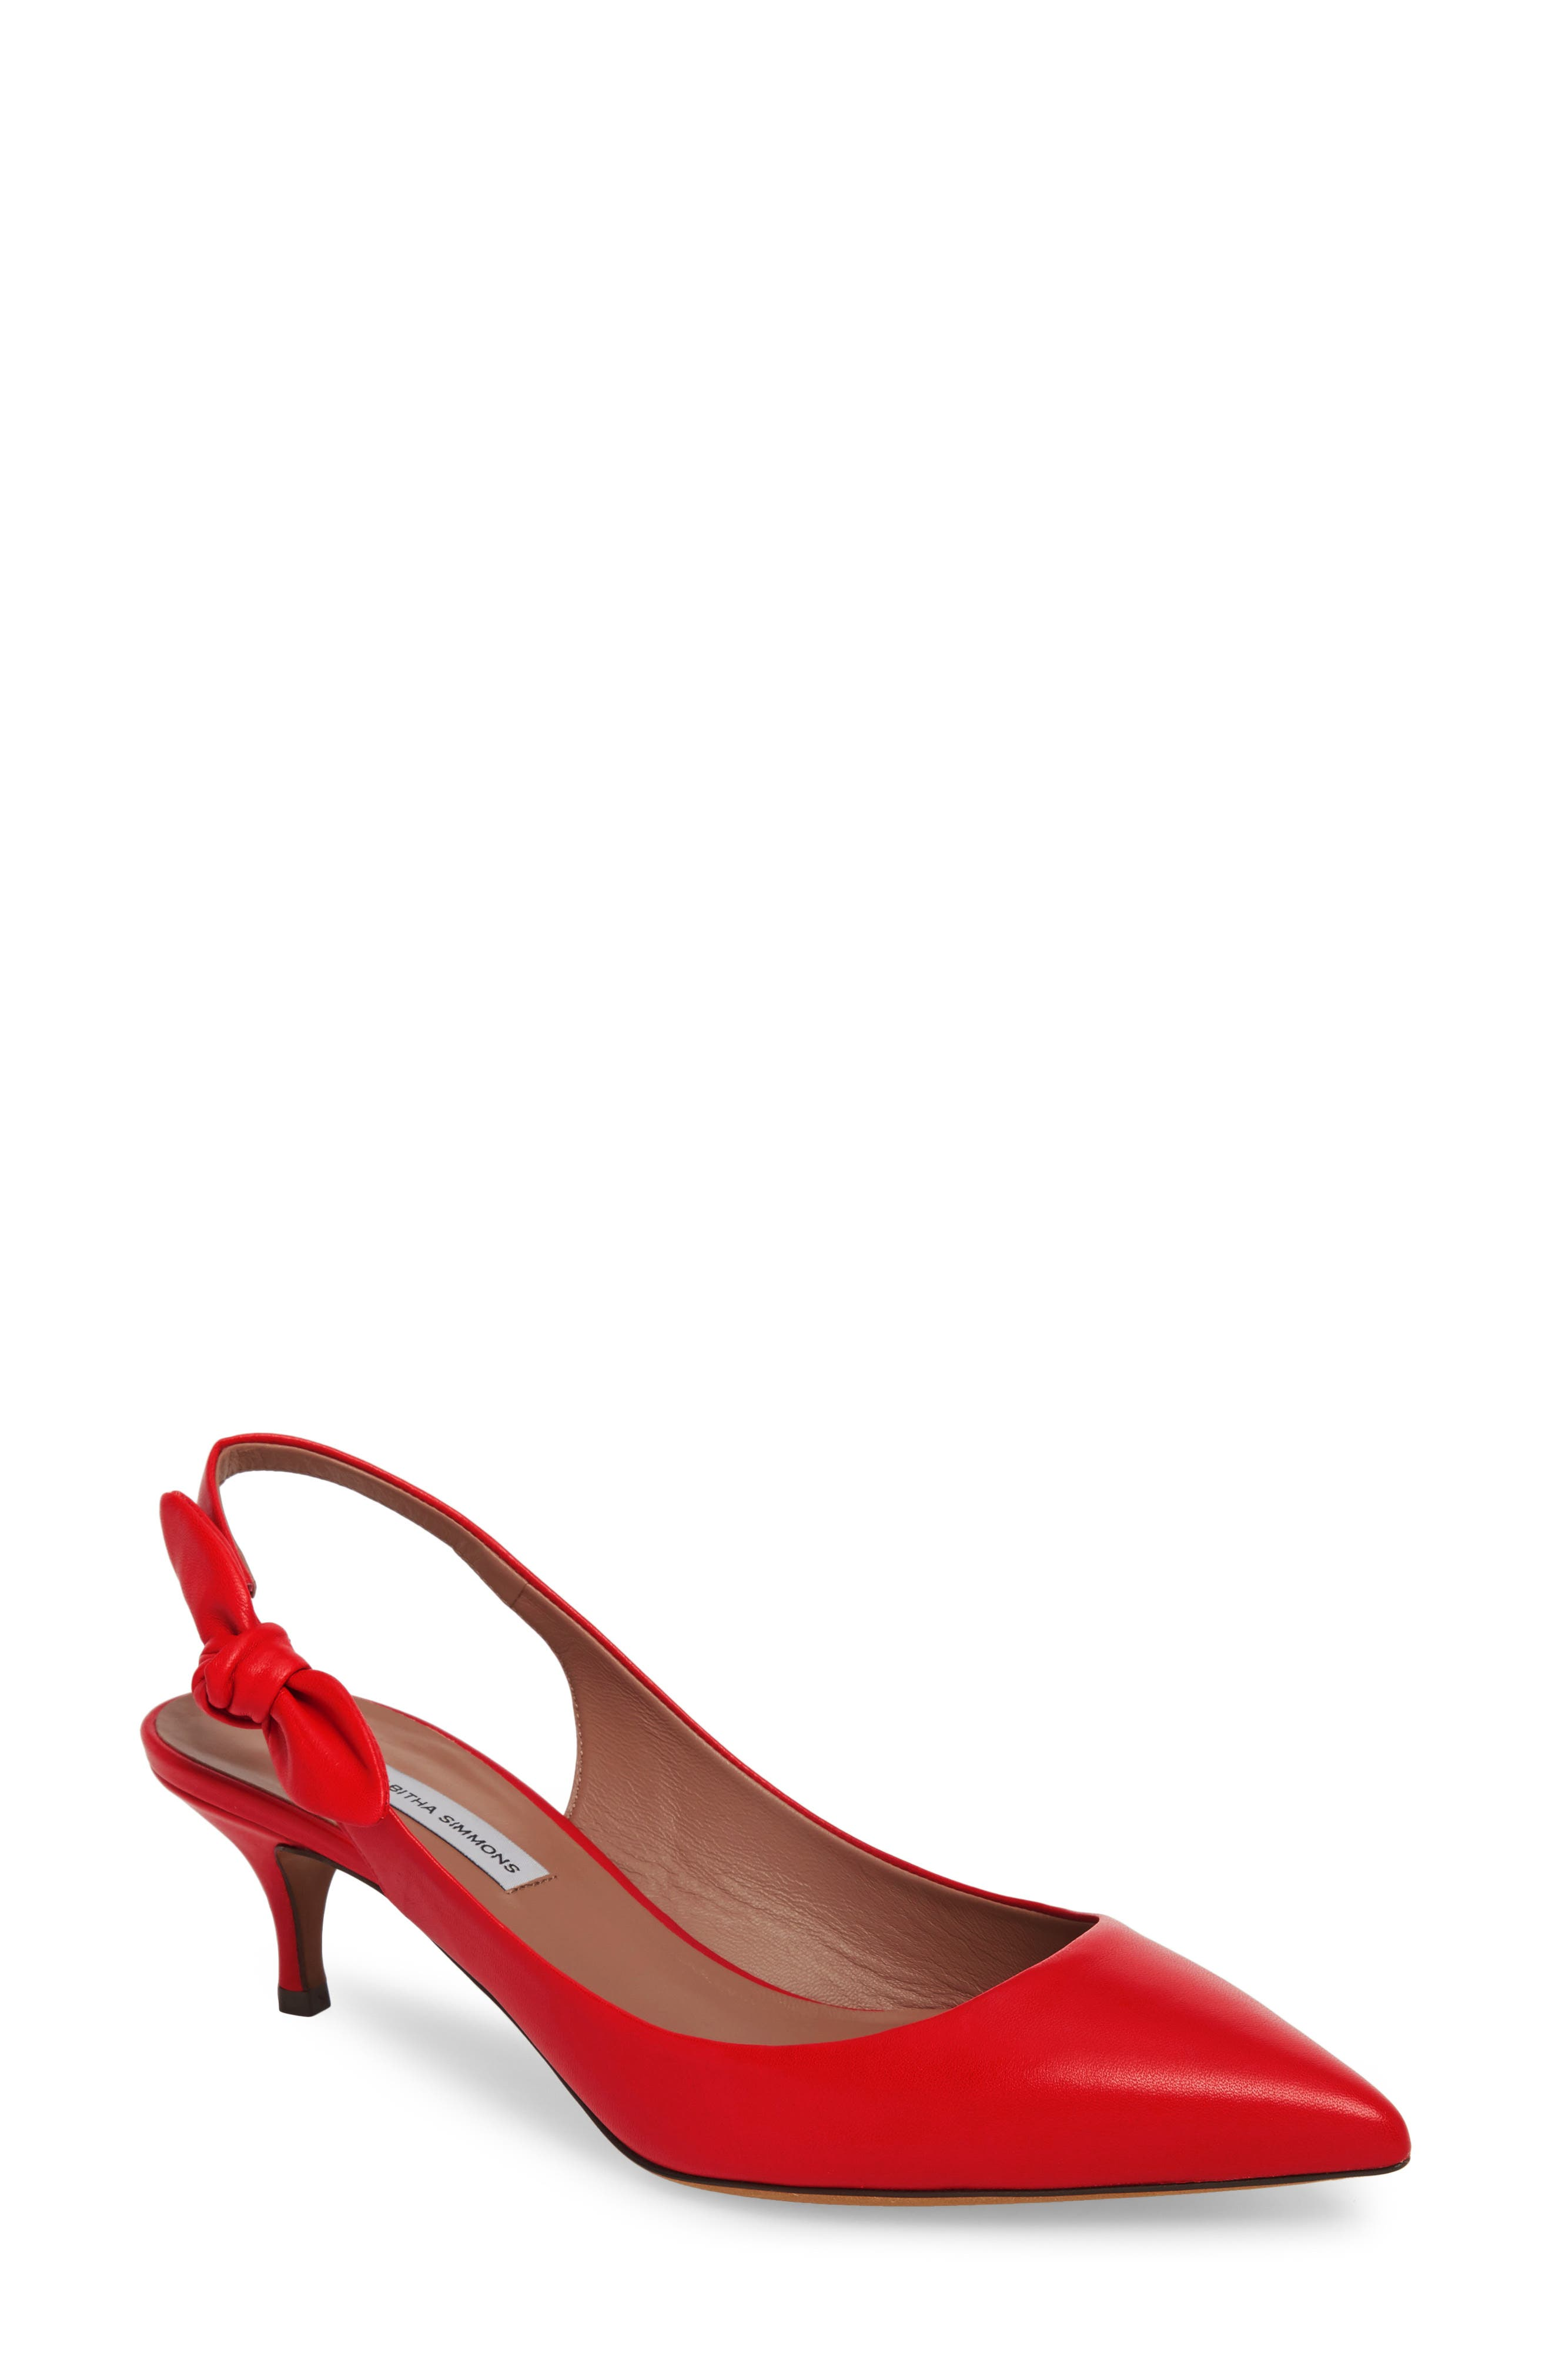 Rise Bow Slingback Pump,                         Main,                         color, Red Leather